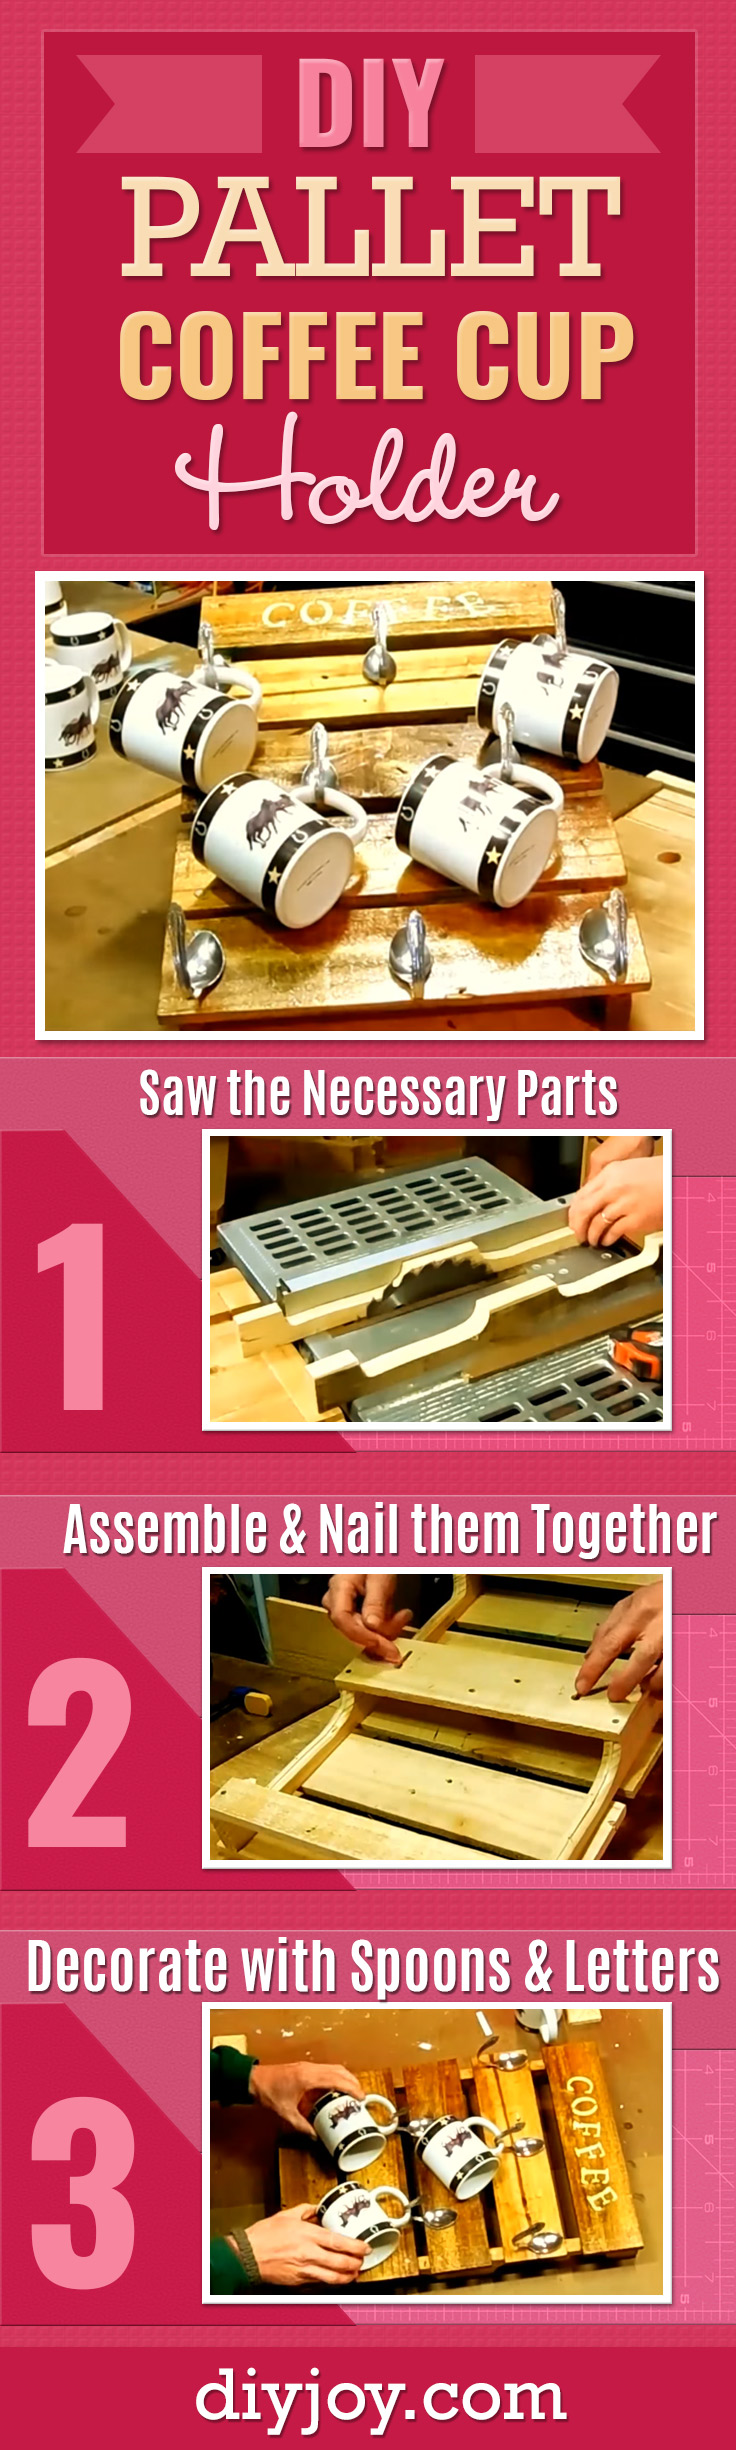 Diy Pallet Coffee Cup Holder Creative Kitchen And Home Decor Made Easy With This